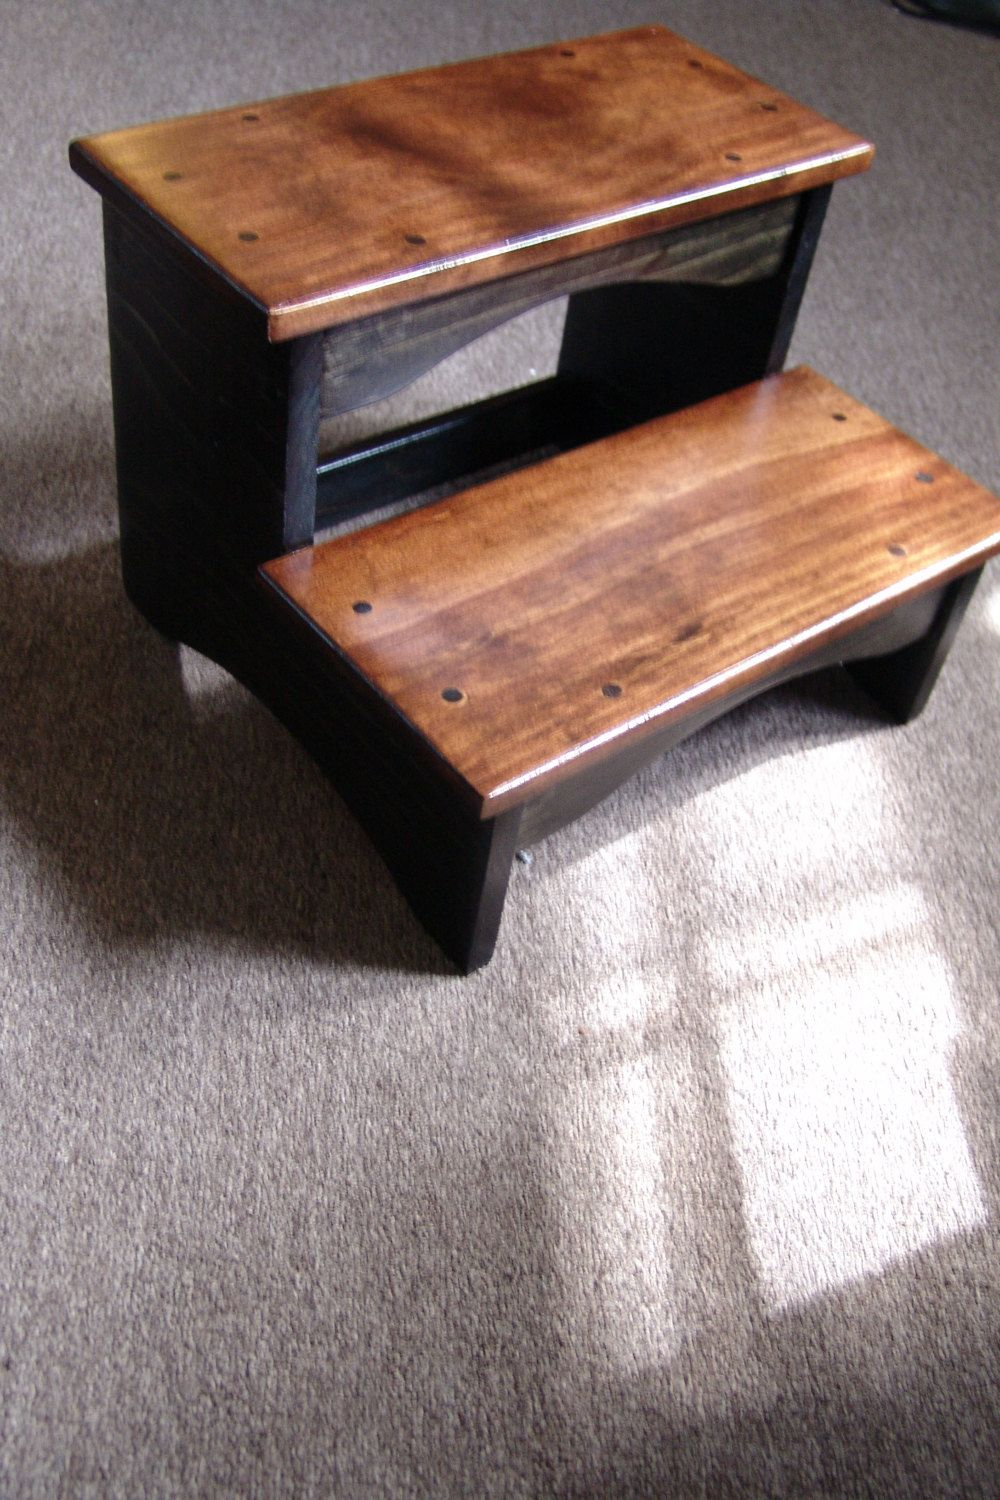 Handcrafted Heavy Duty 2 Step Stool, Solid Wood Wooden Bedside Bedroom  Kitchen Kids Bathroom Black